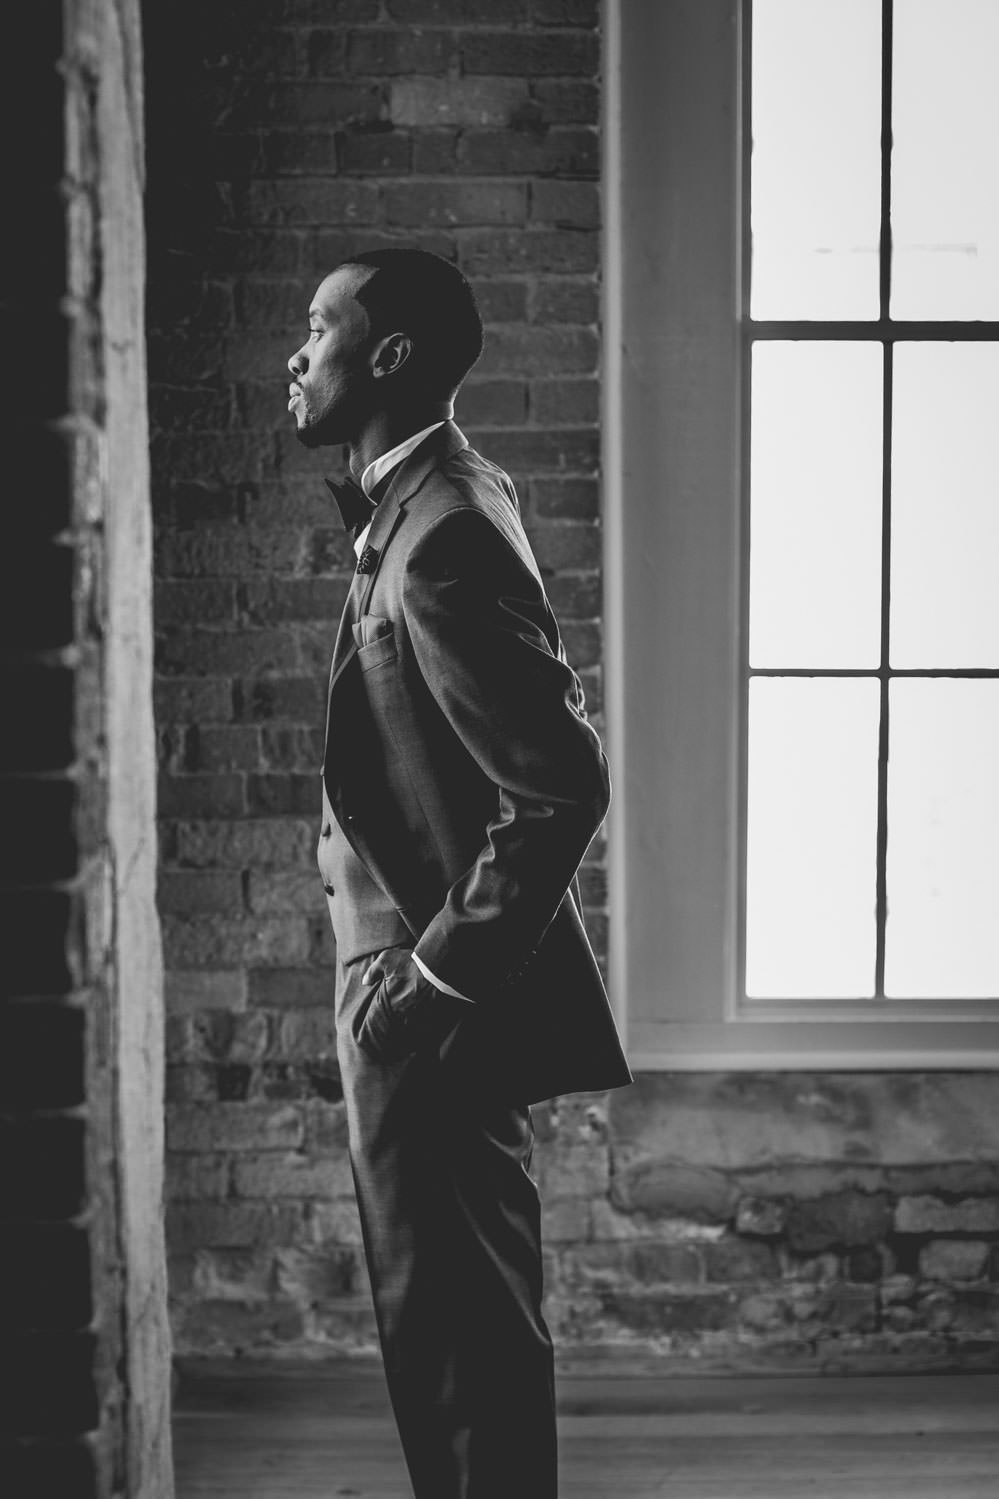 Groom looks onwards as he awaits his wedding day at The Cotton Room in Durham, North Carolina.